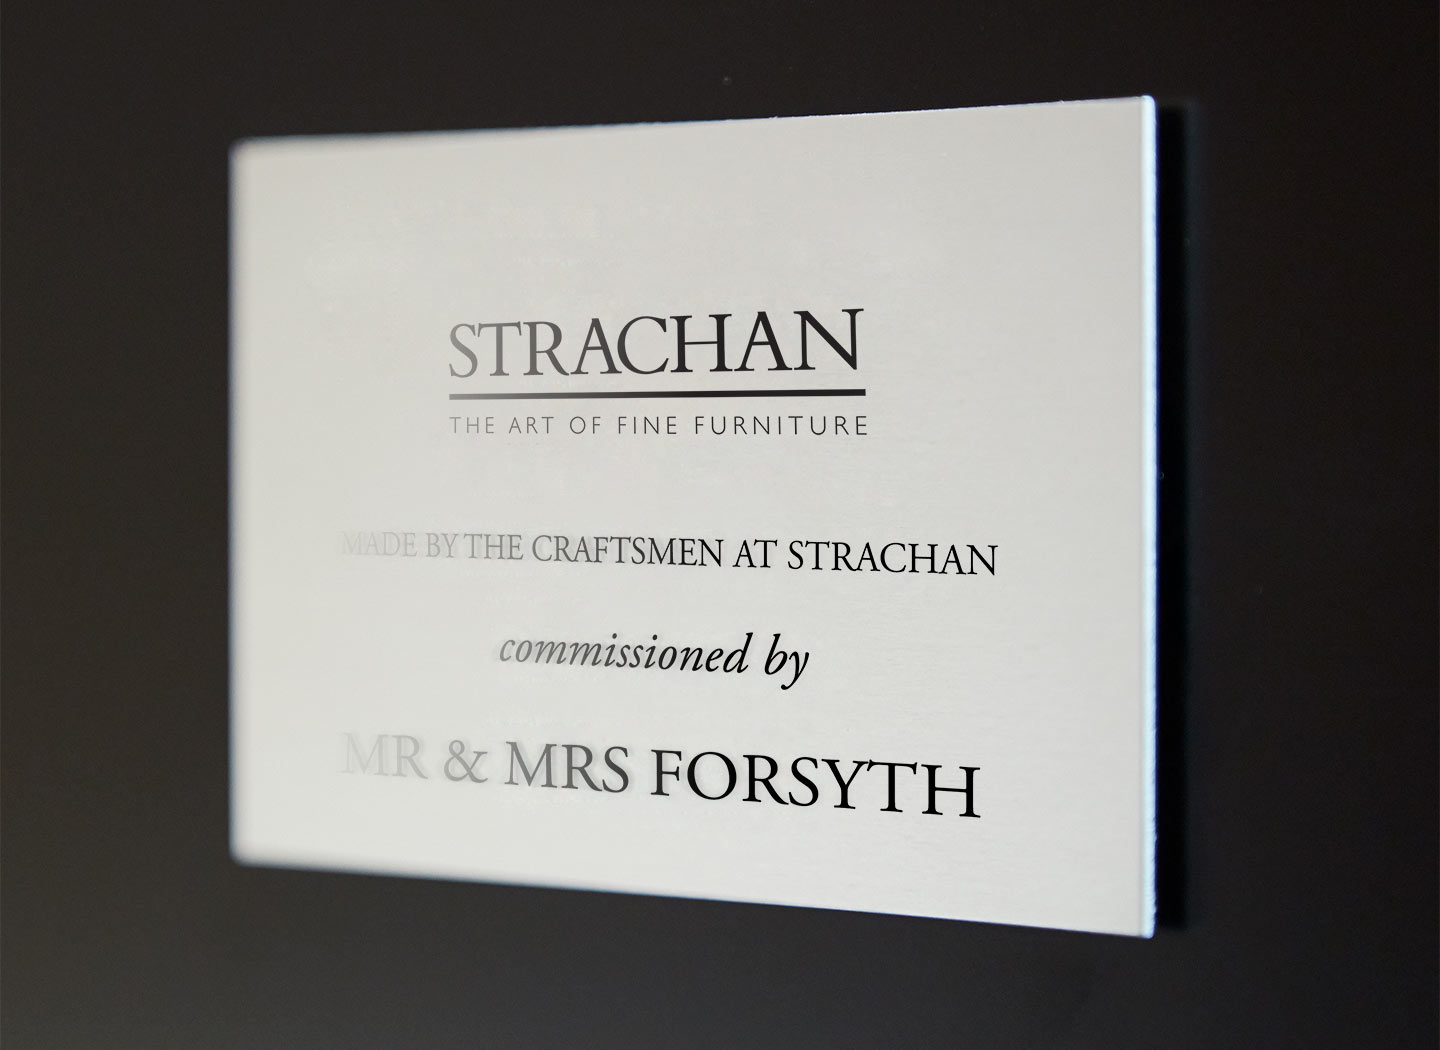 Quality to be proud of - The Strachan seal of approval